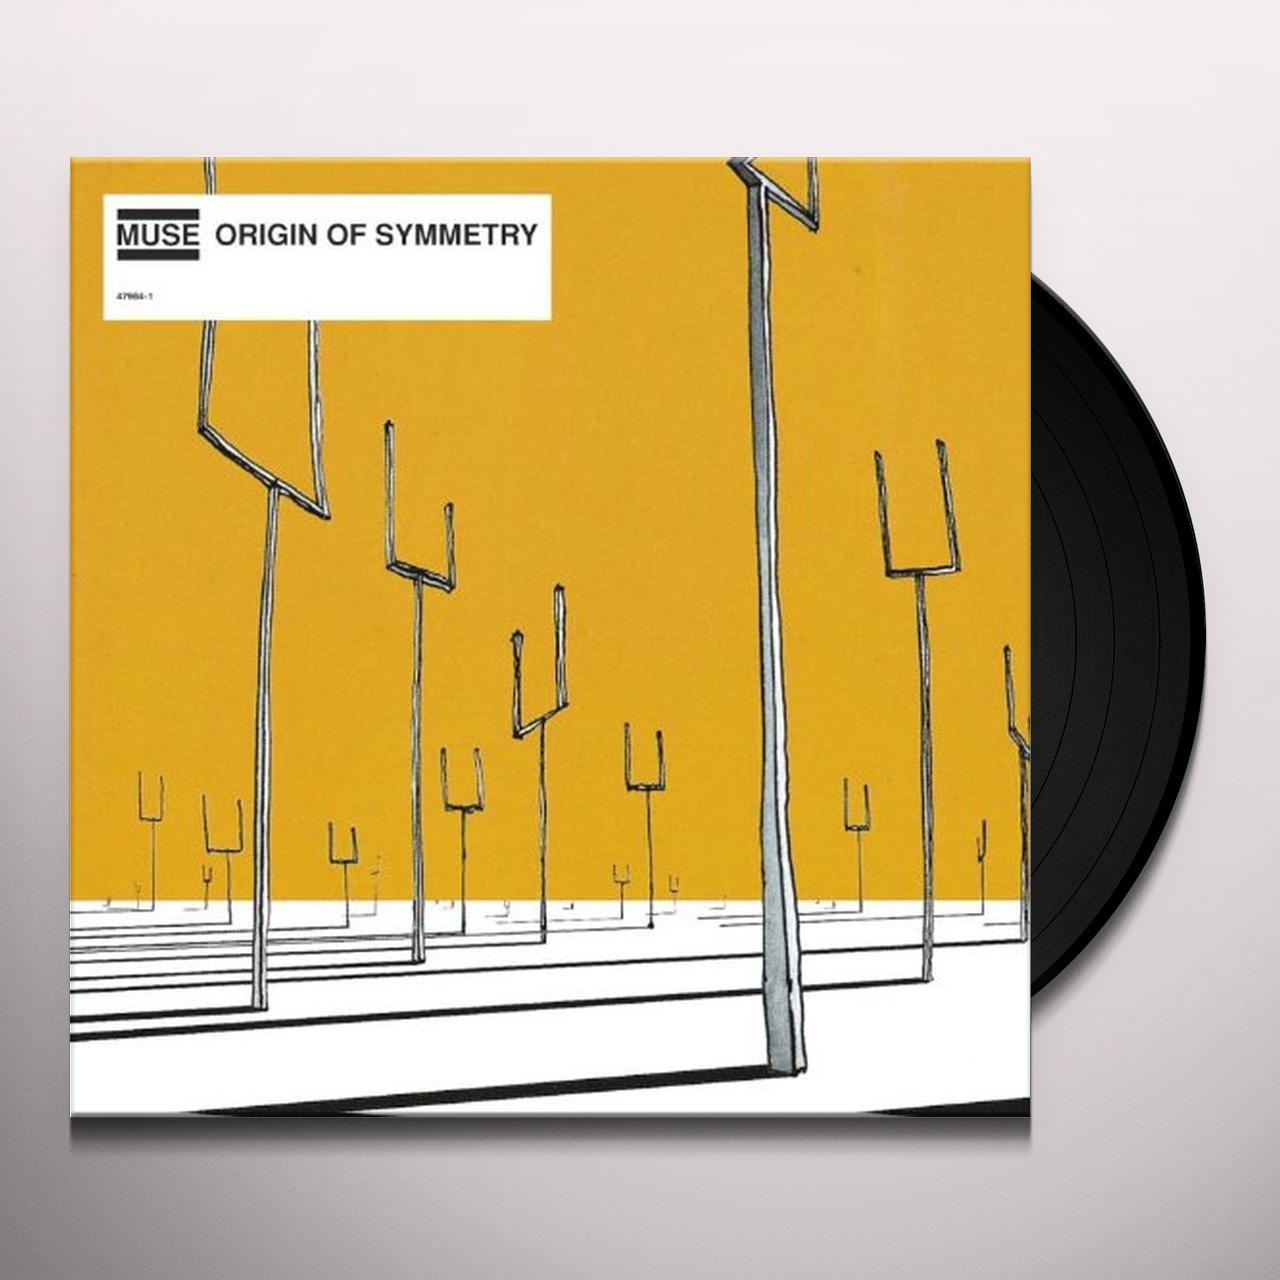 Muse ORIGIN OF SYMMETRY Vinyl Record Tap To Expand